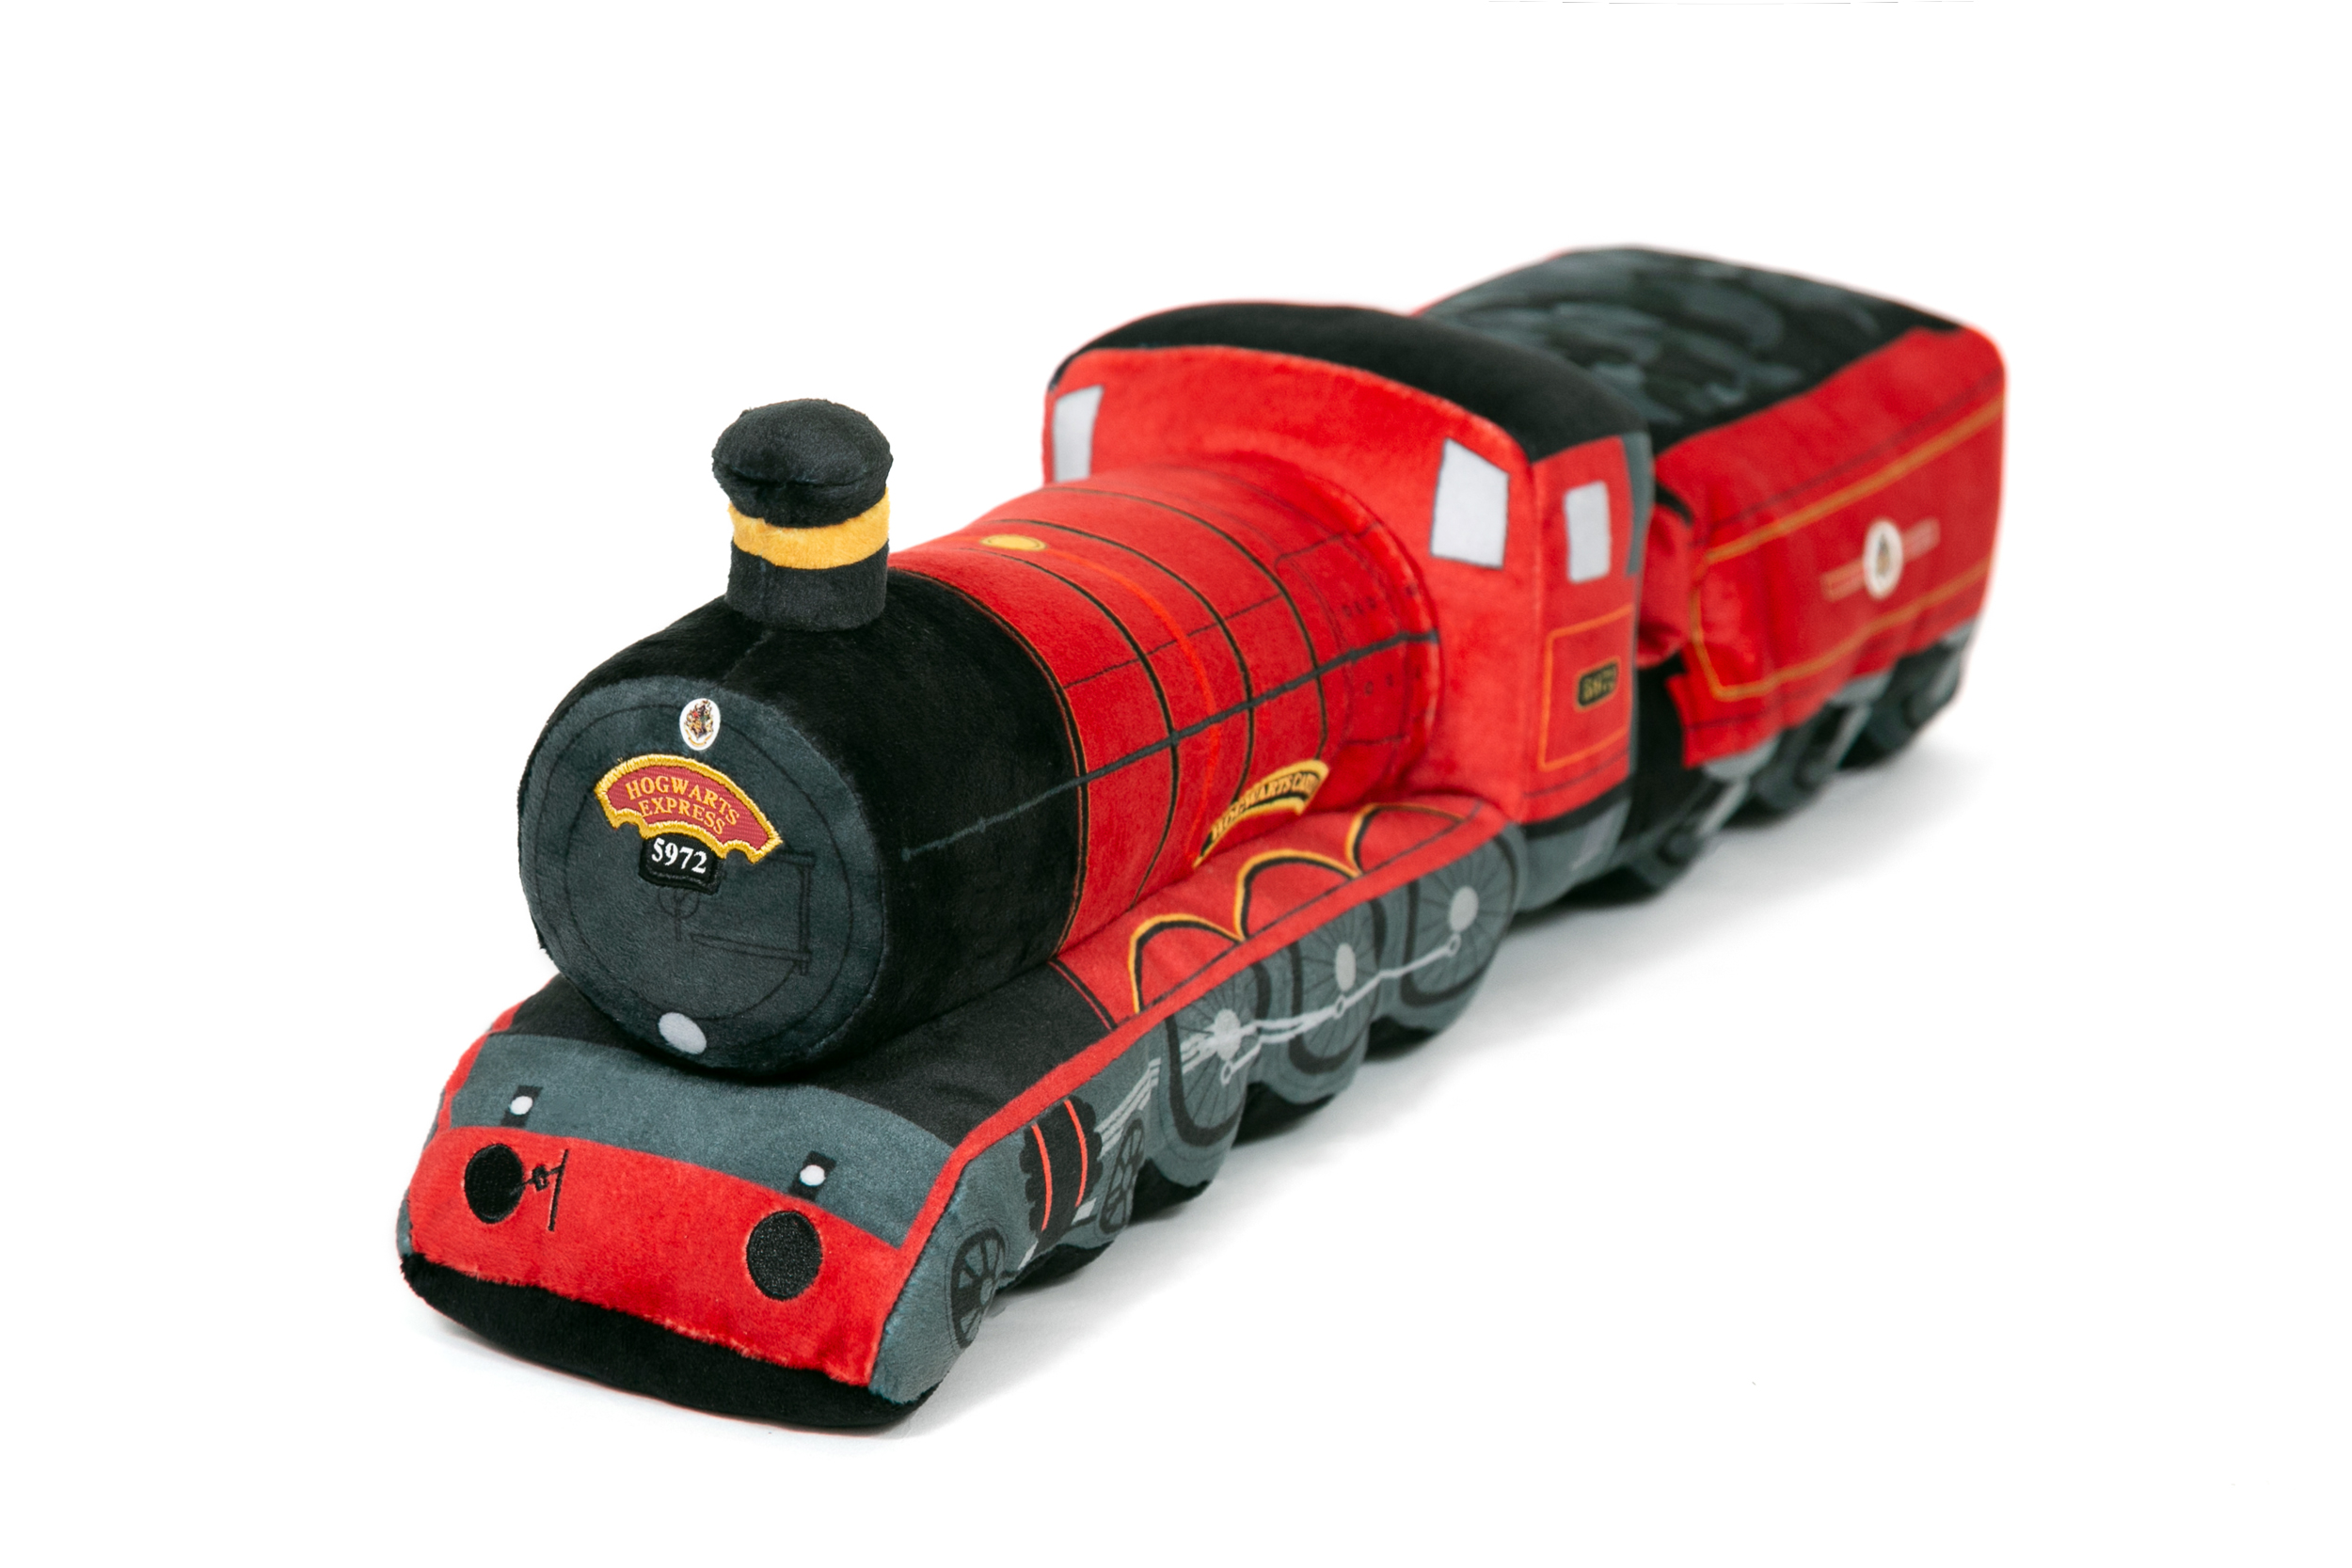 Snuggle up with the iconic Hogwarts Express!